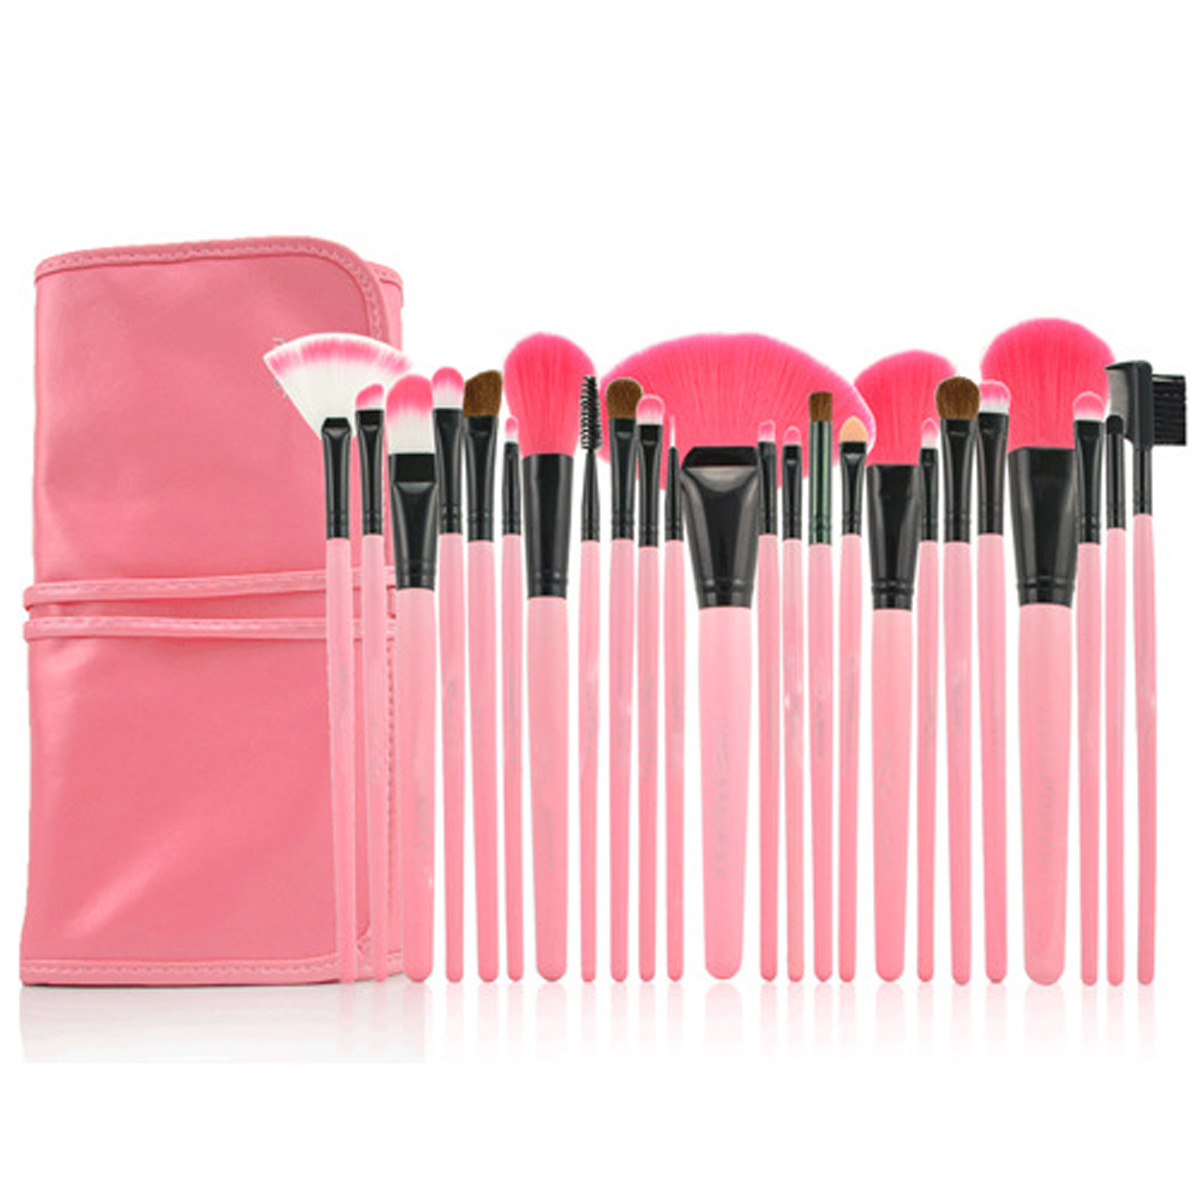 24 Pcs Portable Makeup Brushes Tool Make-up Toiletry Kit Wood Handle Eye Shadow Brush Nose Foundation Brush Set g056 professional makeup brush weasel hair ebony handle make up eyeshadow brushes cosmetic tool angled eye nose shadow brush